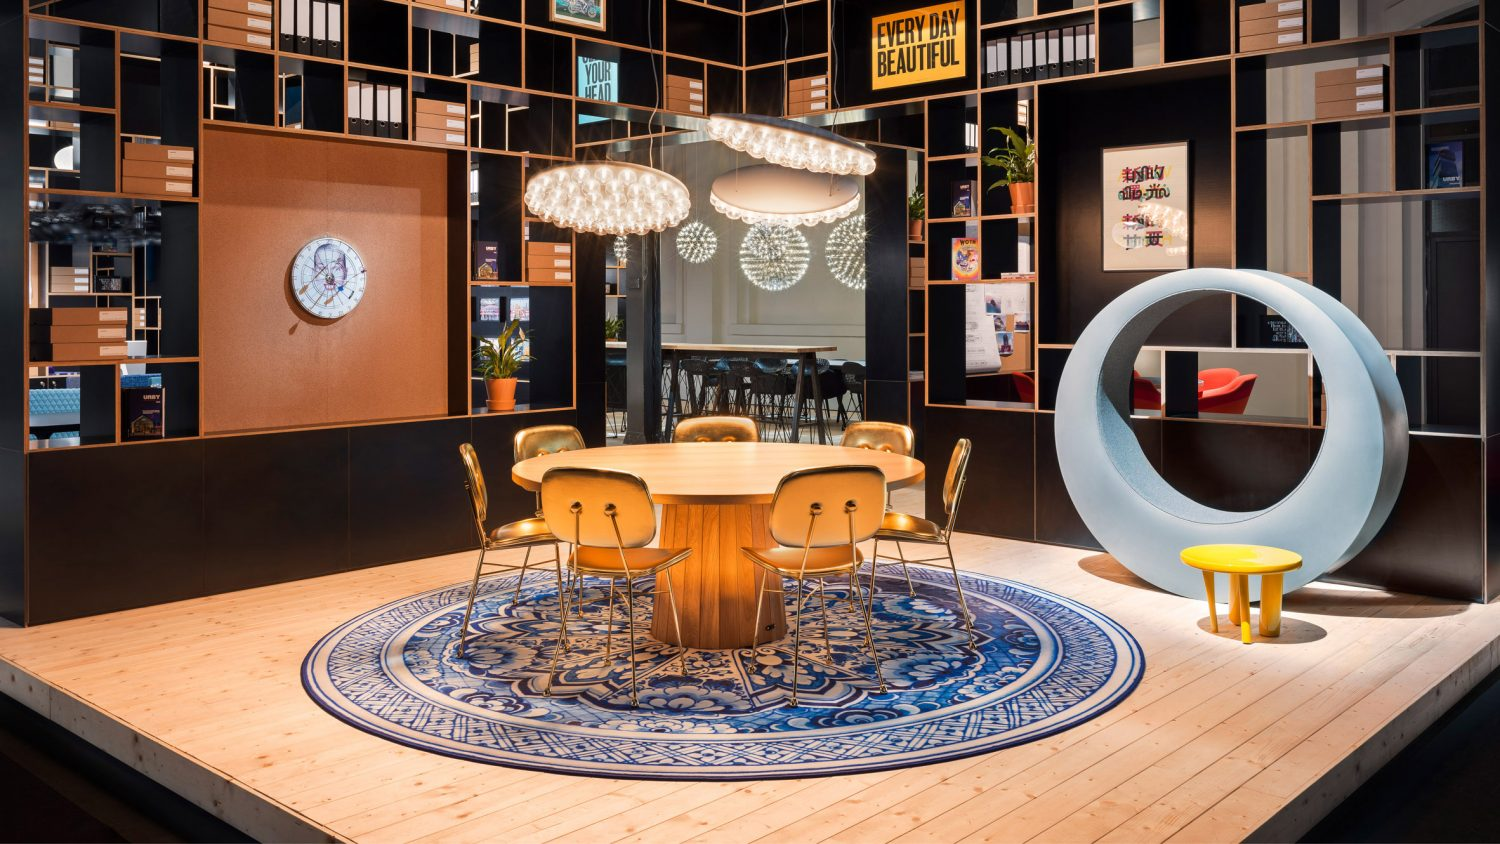 moooi alla Milano Design Week  milano design week MILANO DESIGN WEEK 2019: I MIGLIORI 7 SHOWROOMS DI DESIGN moooi c